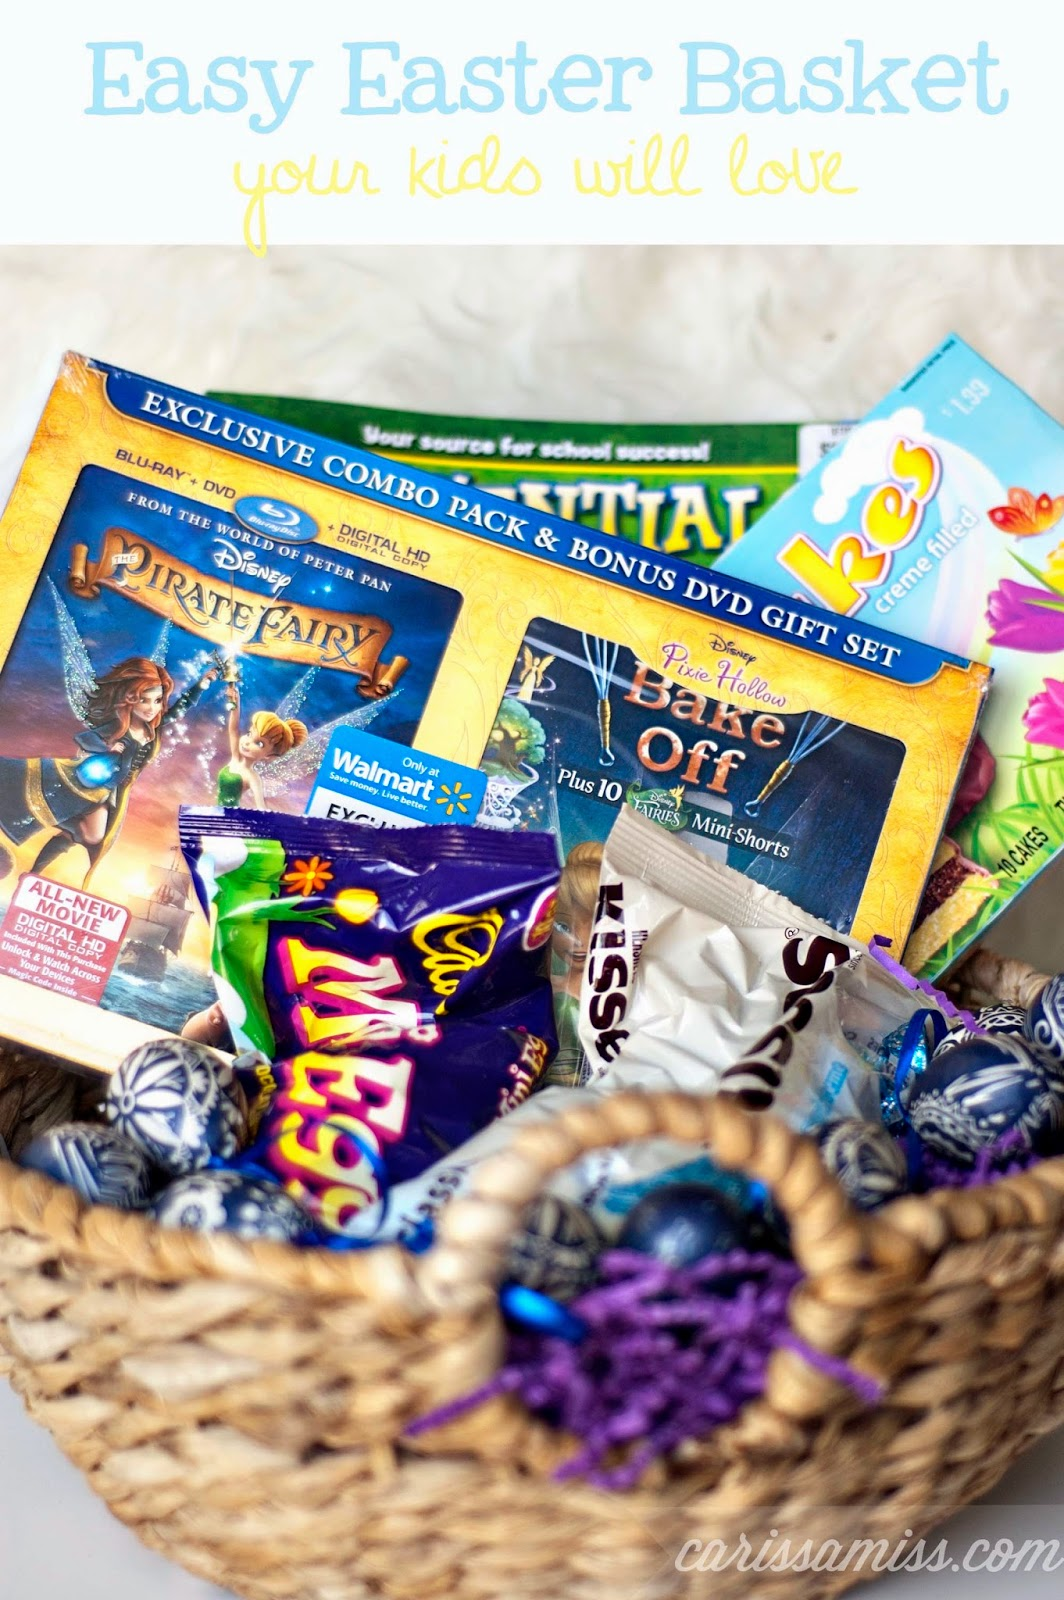 Carissa Miss: Easy Easter Basket #ProtectPixieHollow #cbias #ad